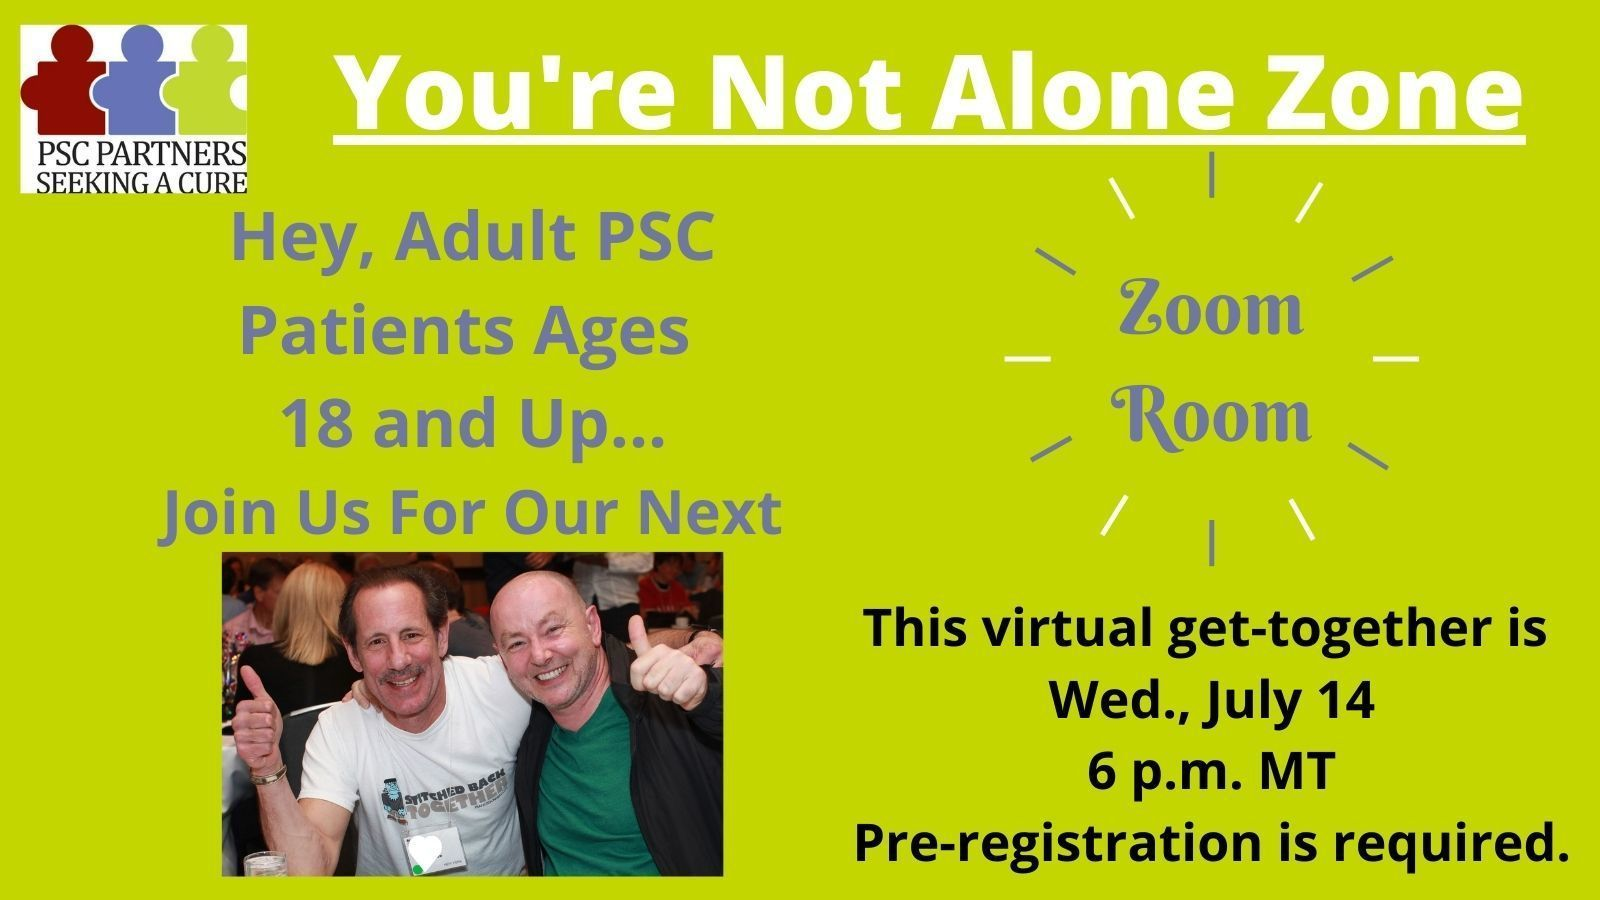 ZoomRoom for Adult PSC Patients Ages 18 and Up